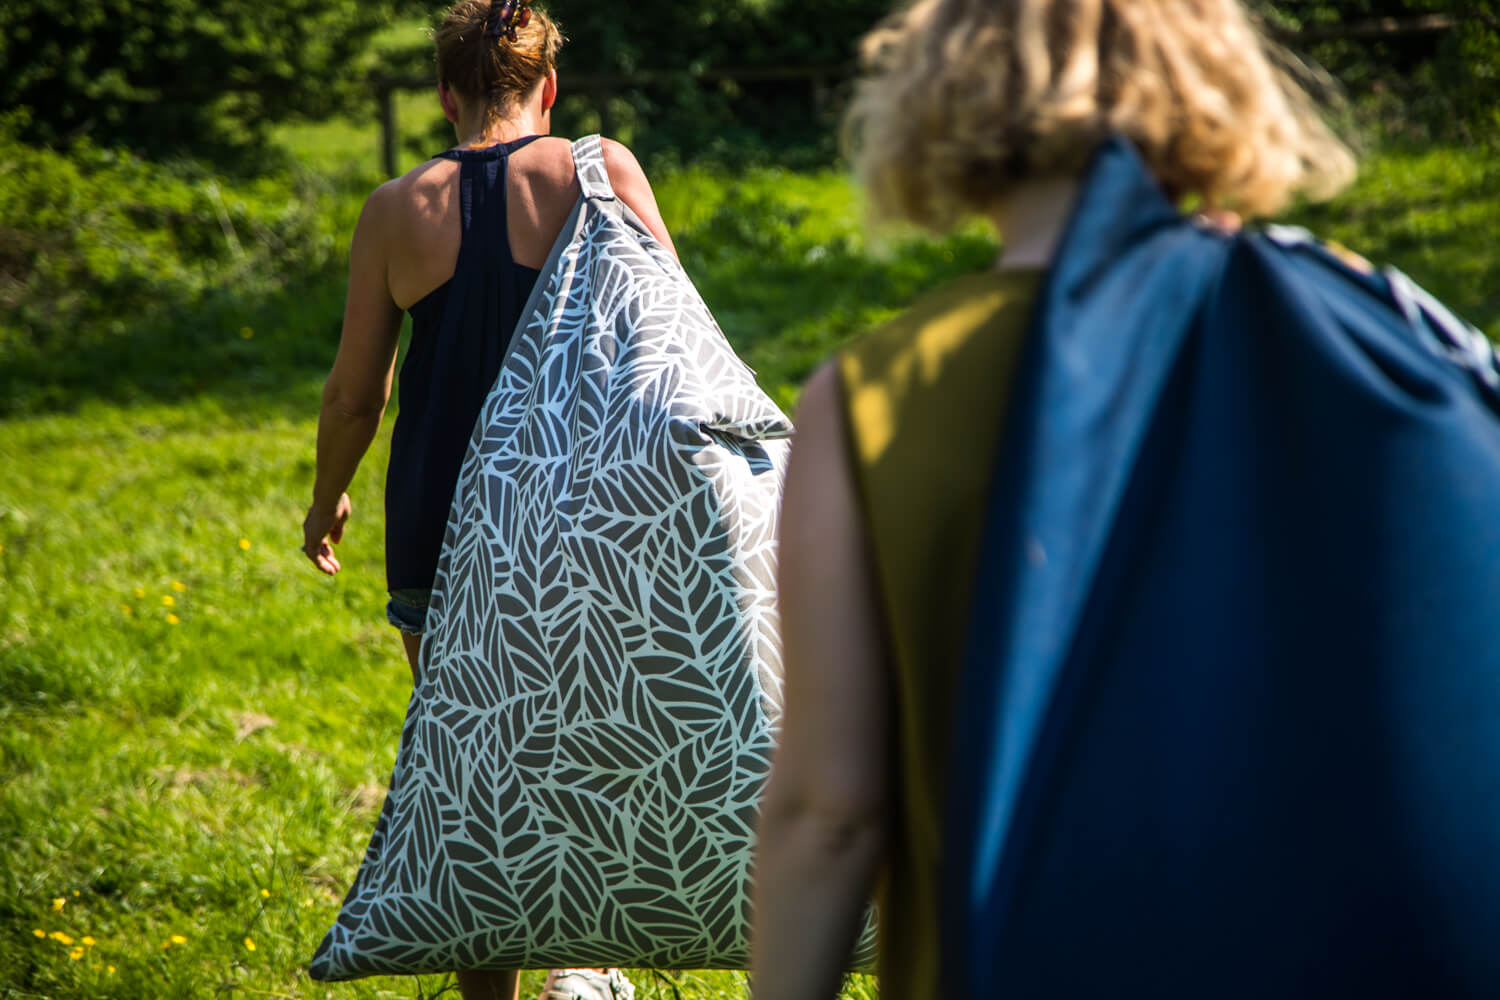 Two women easily carry their beach chair bean bags using the carry handle sewn on the back